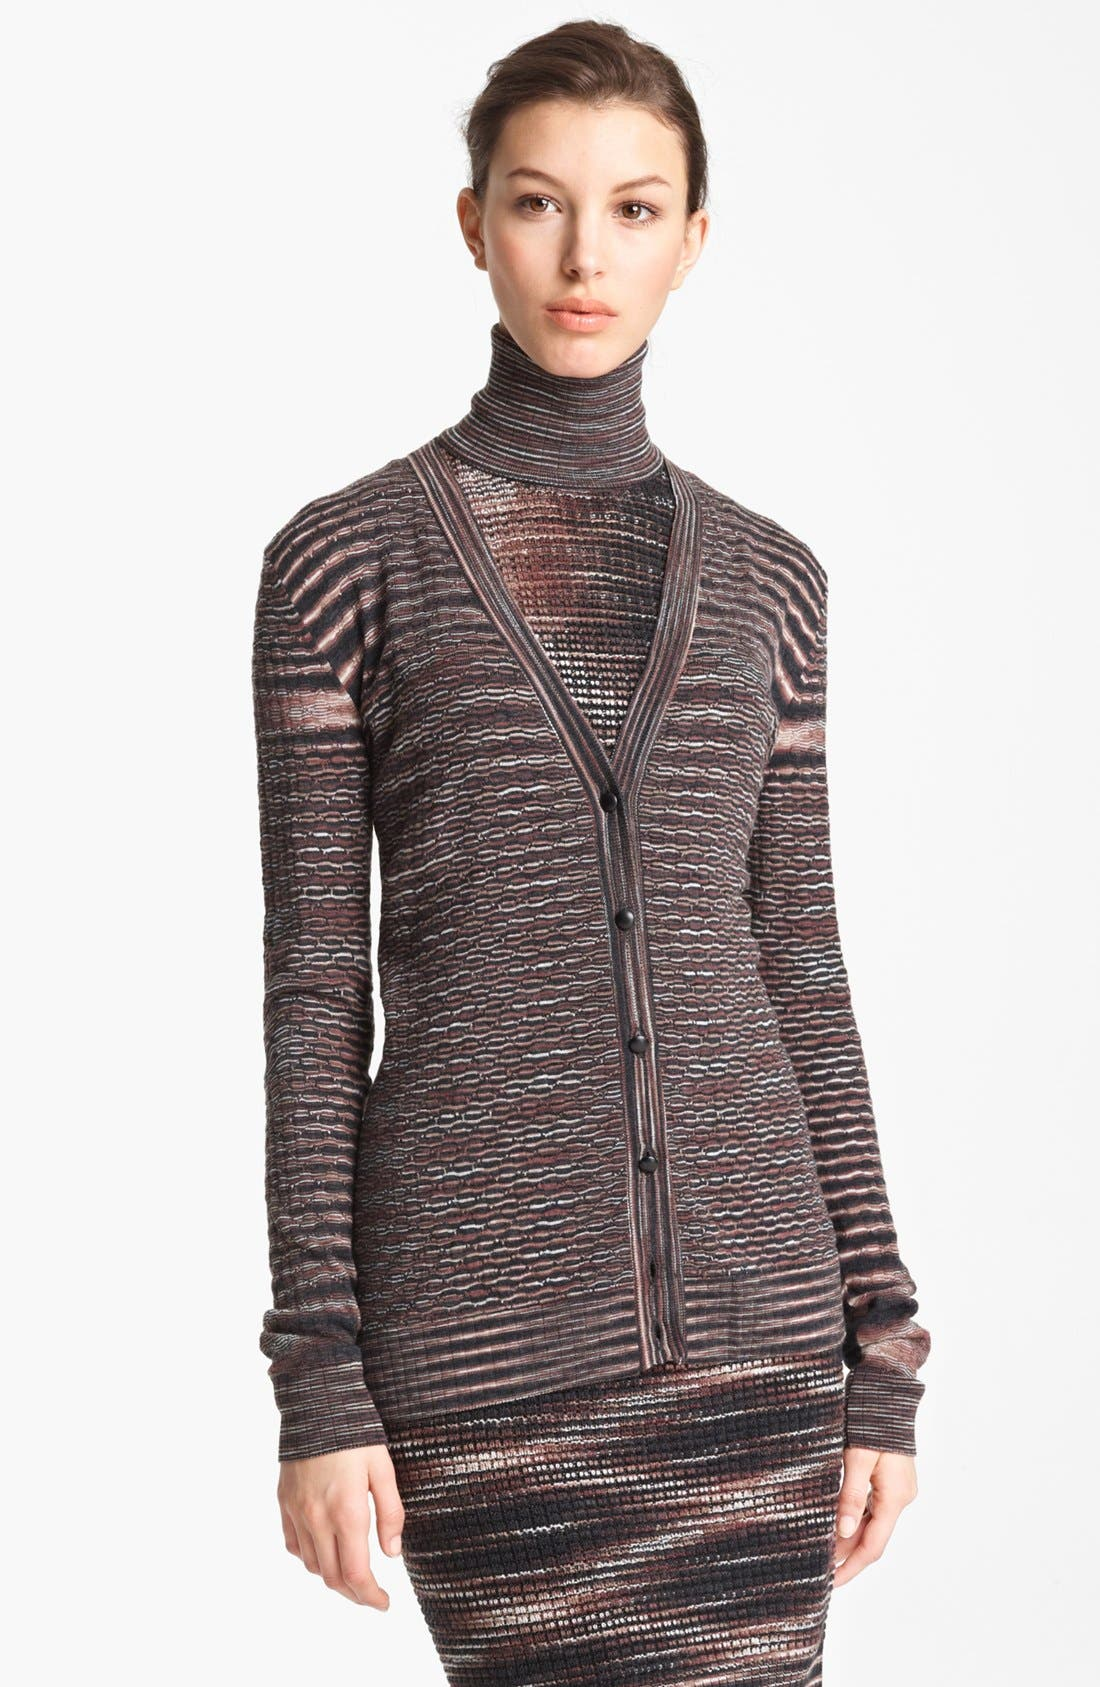 Main Image - Missoni Wavy Stitch Cardigan